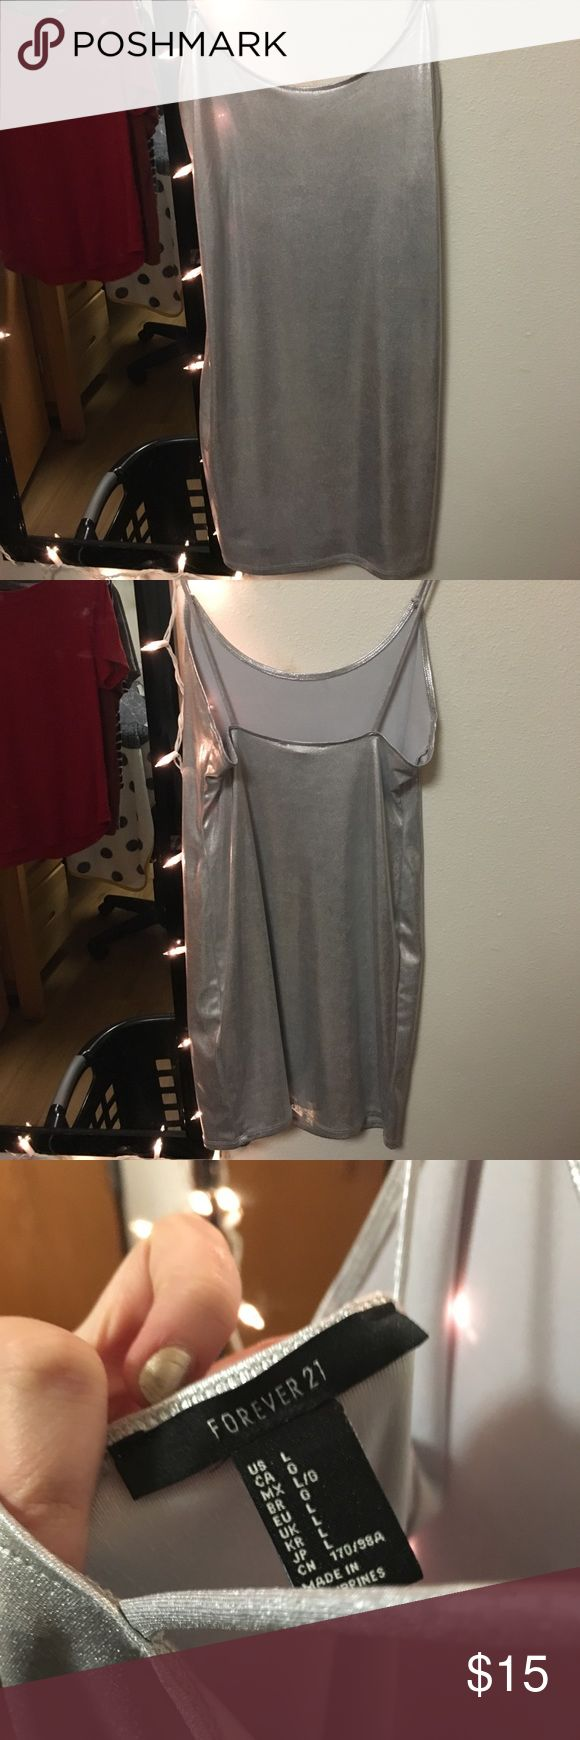 Metallic silver bodycon dress! In perfect condition, bought and washed it for Halloween costume and ended up not wearing it!! Runs kind of small though! Forever 21 Dresses Mini